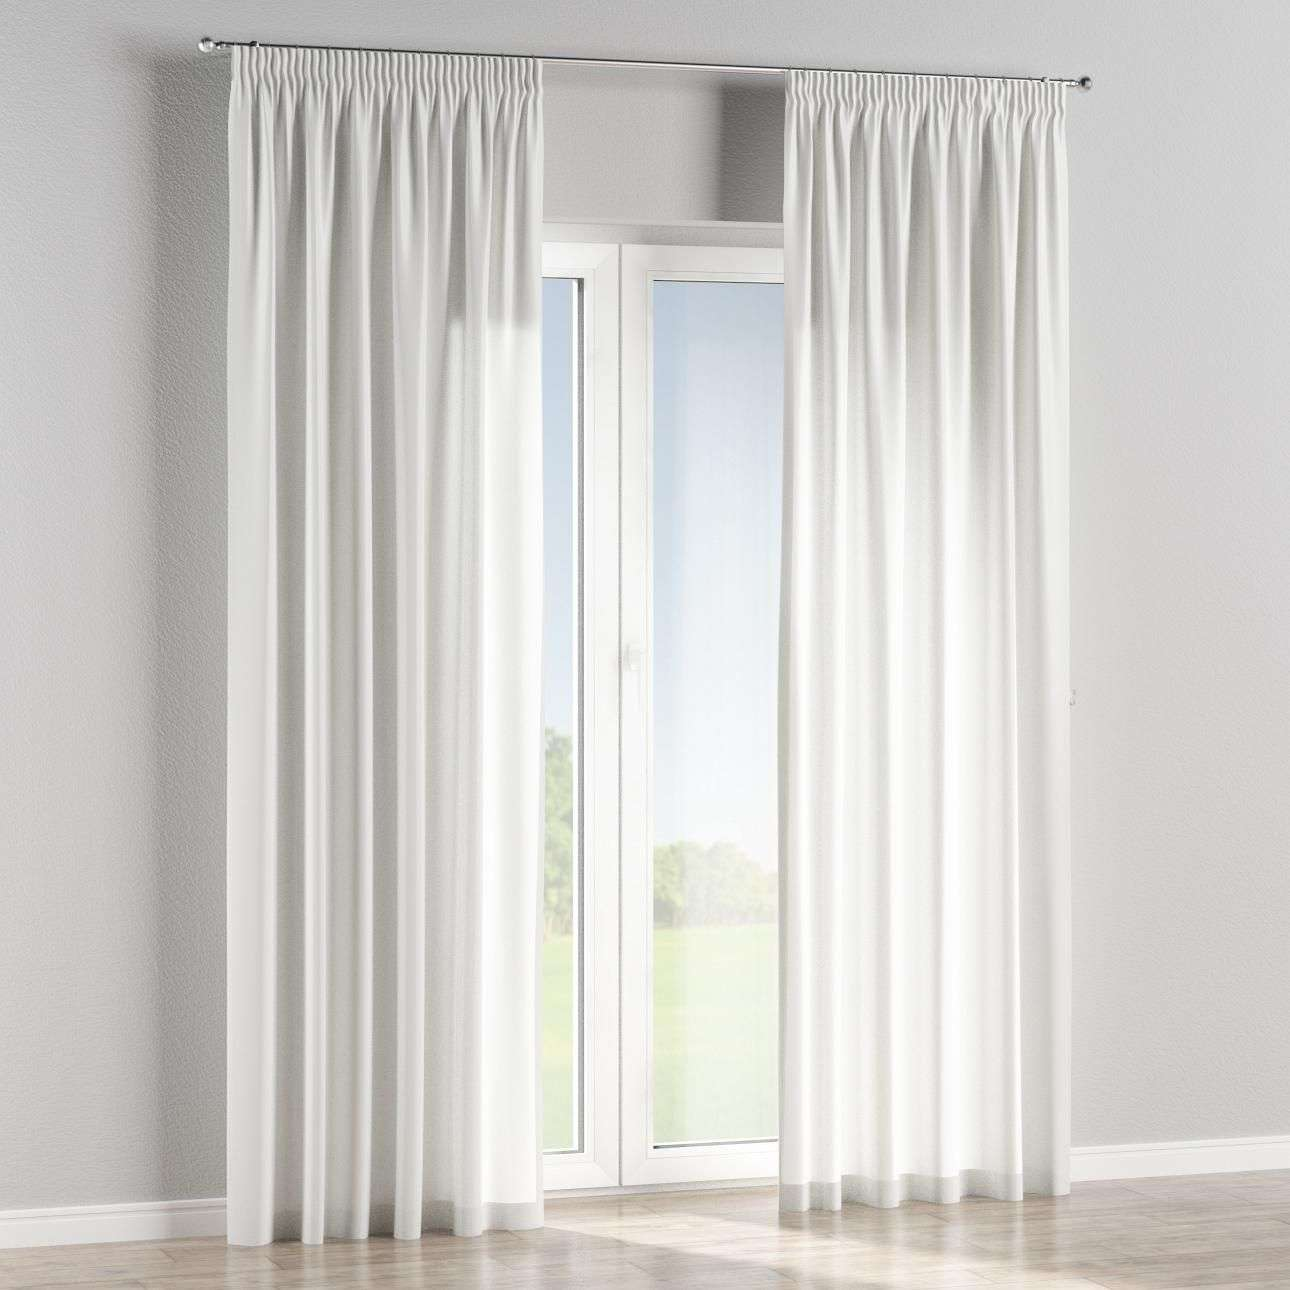 Pencil pleat curtains in collection Mirella, fabric: 141-12